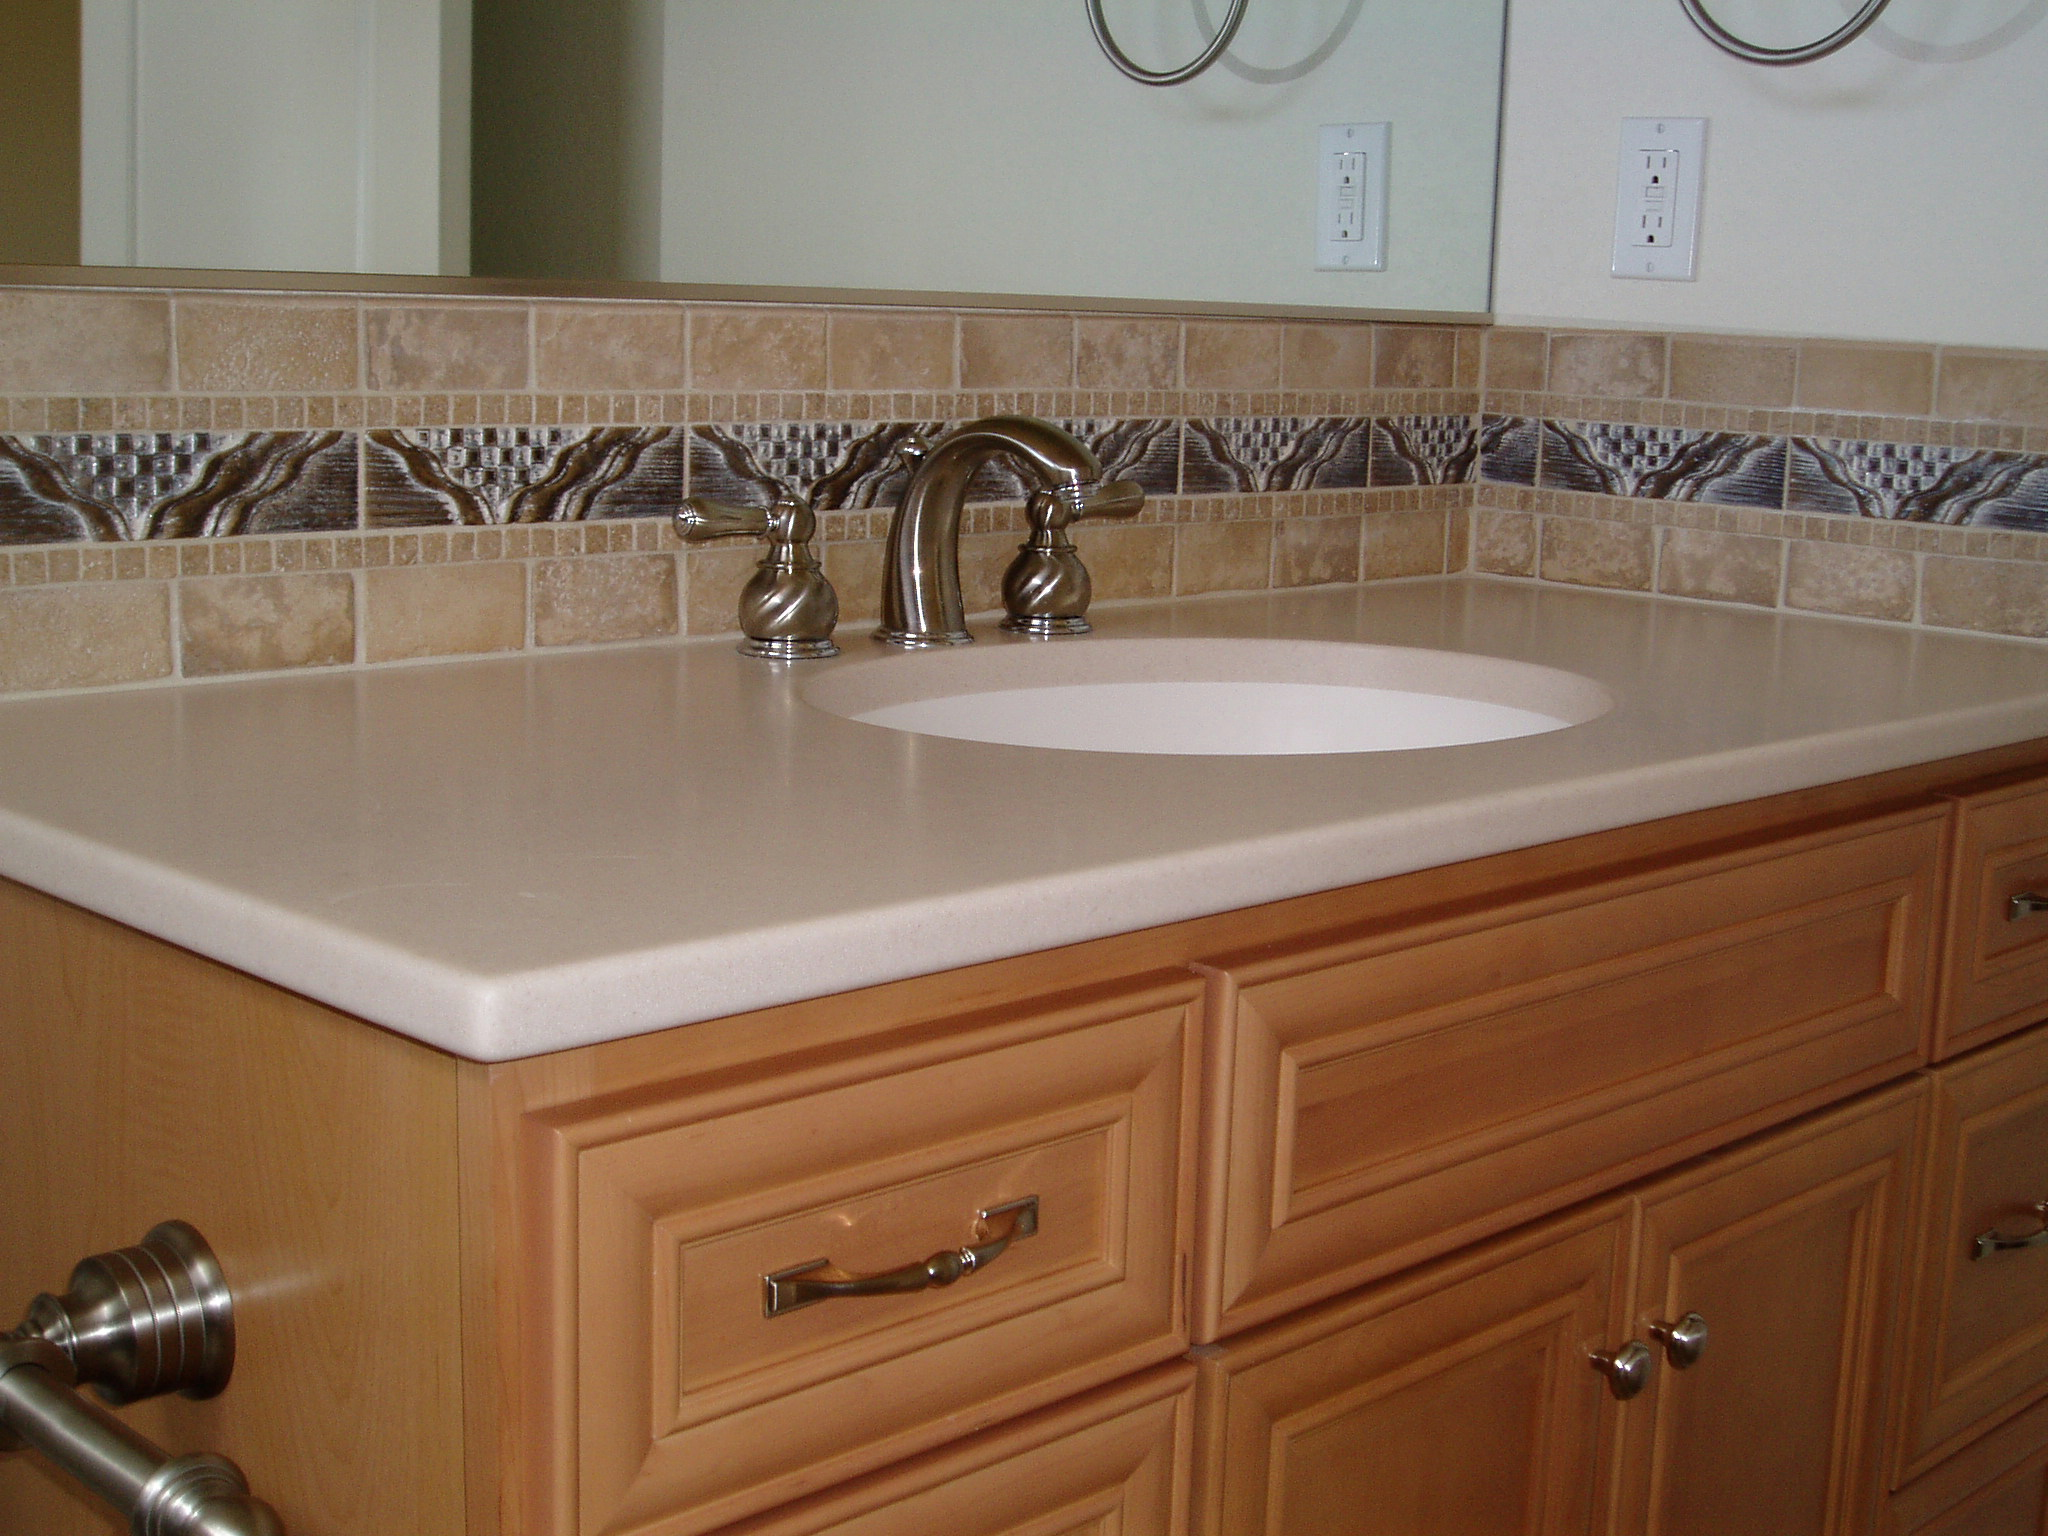 Standard Granite Countertop Thickness Solid Surface Counter Top Basics Sustainable Home